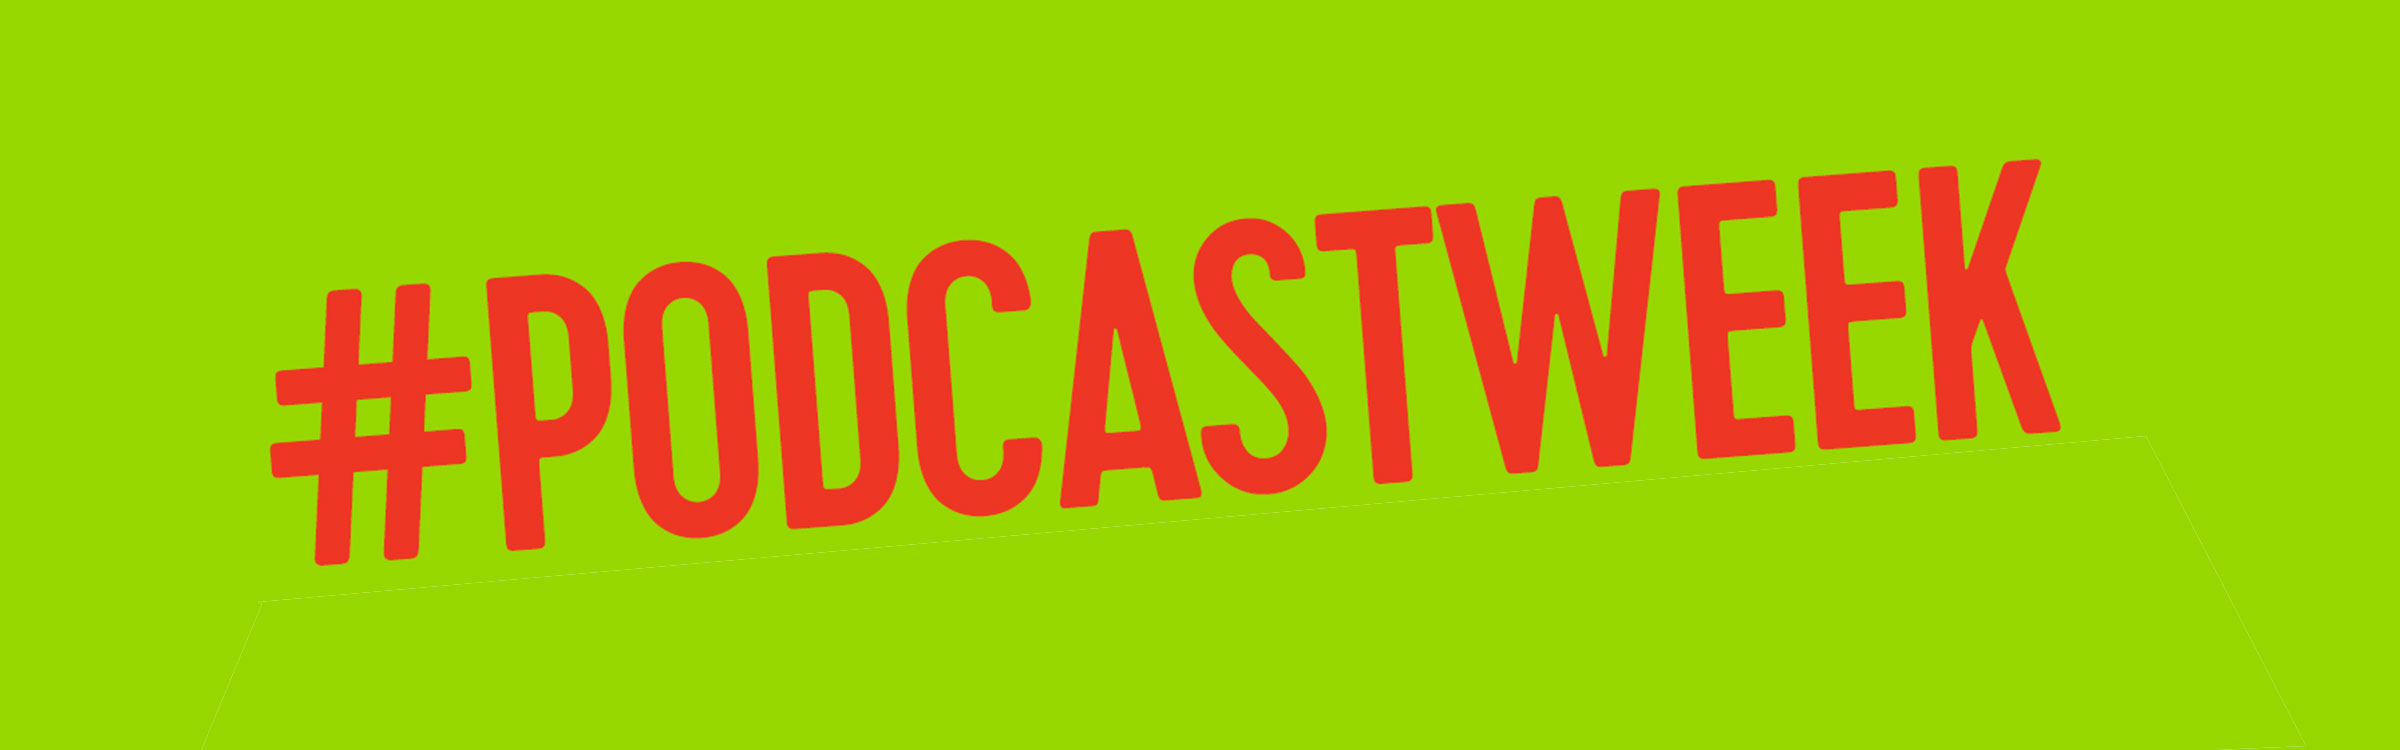 Podcastweek header